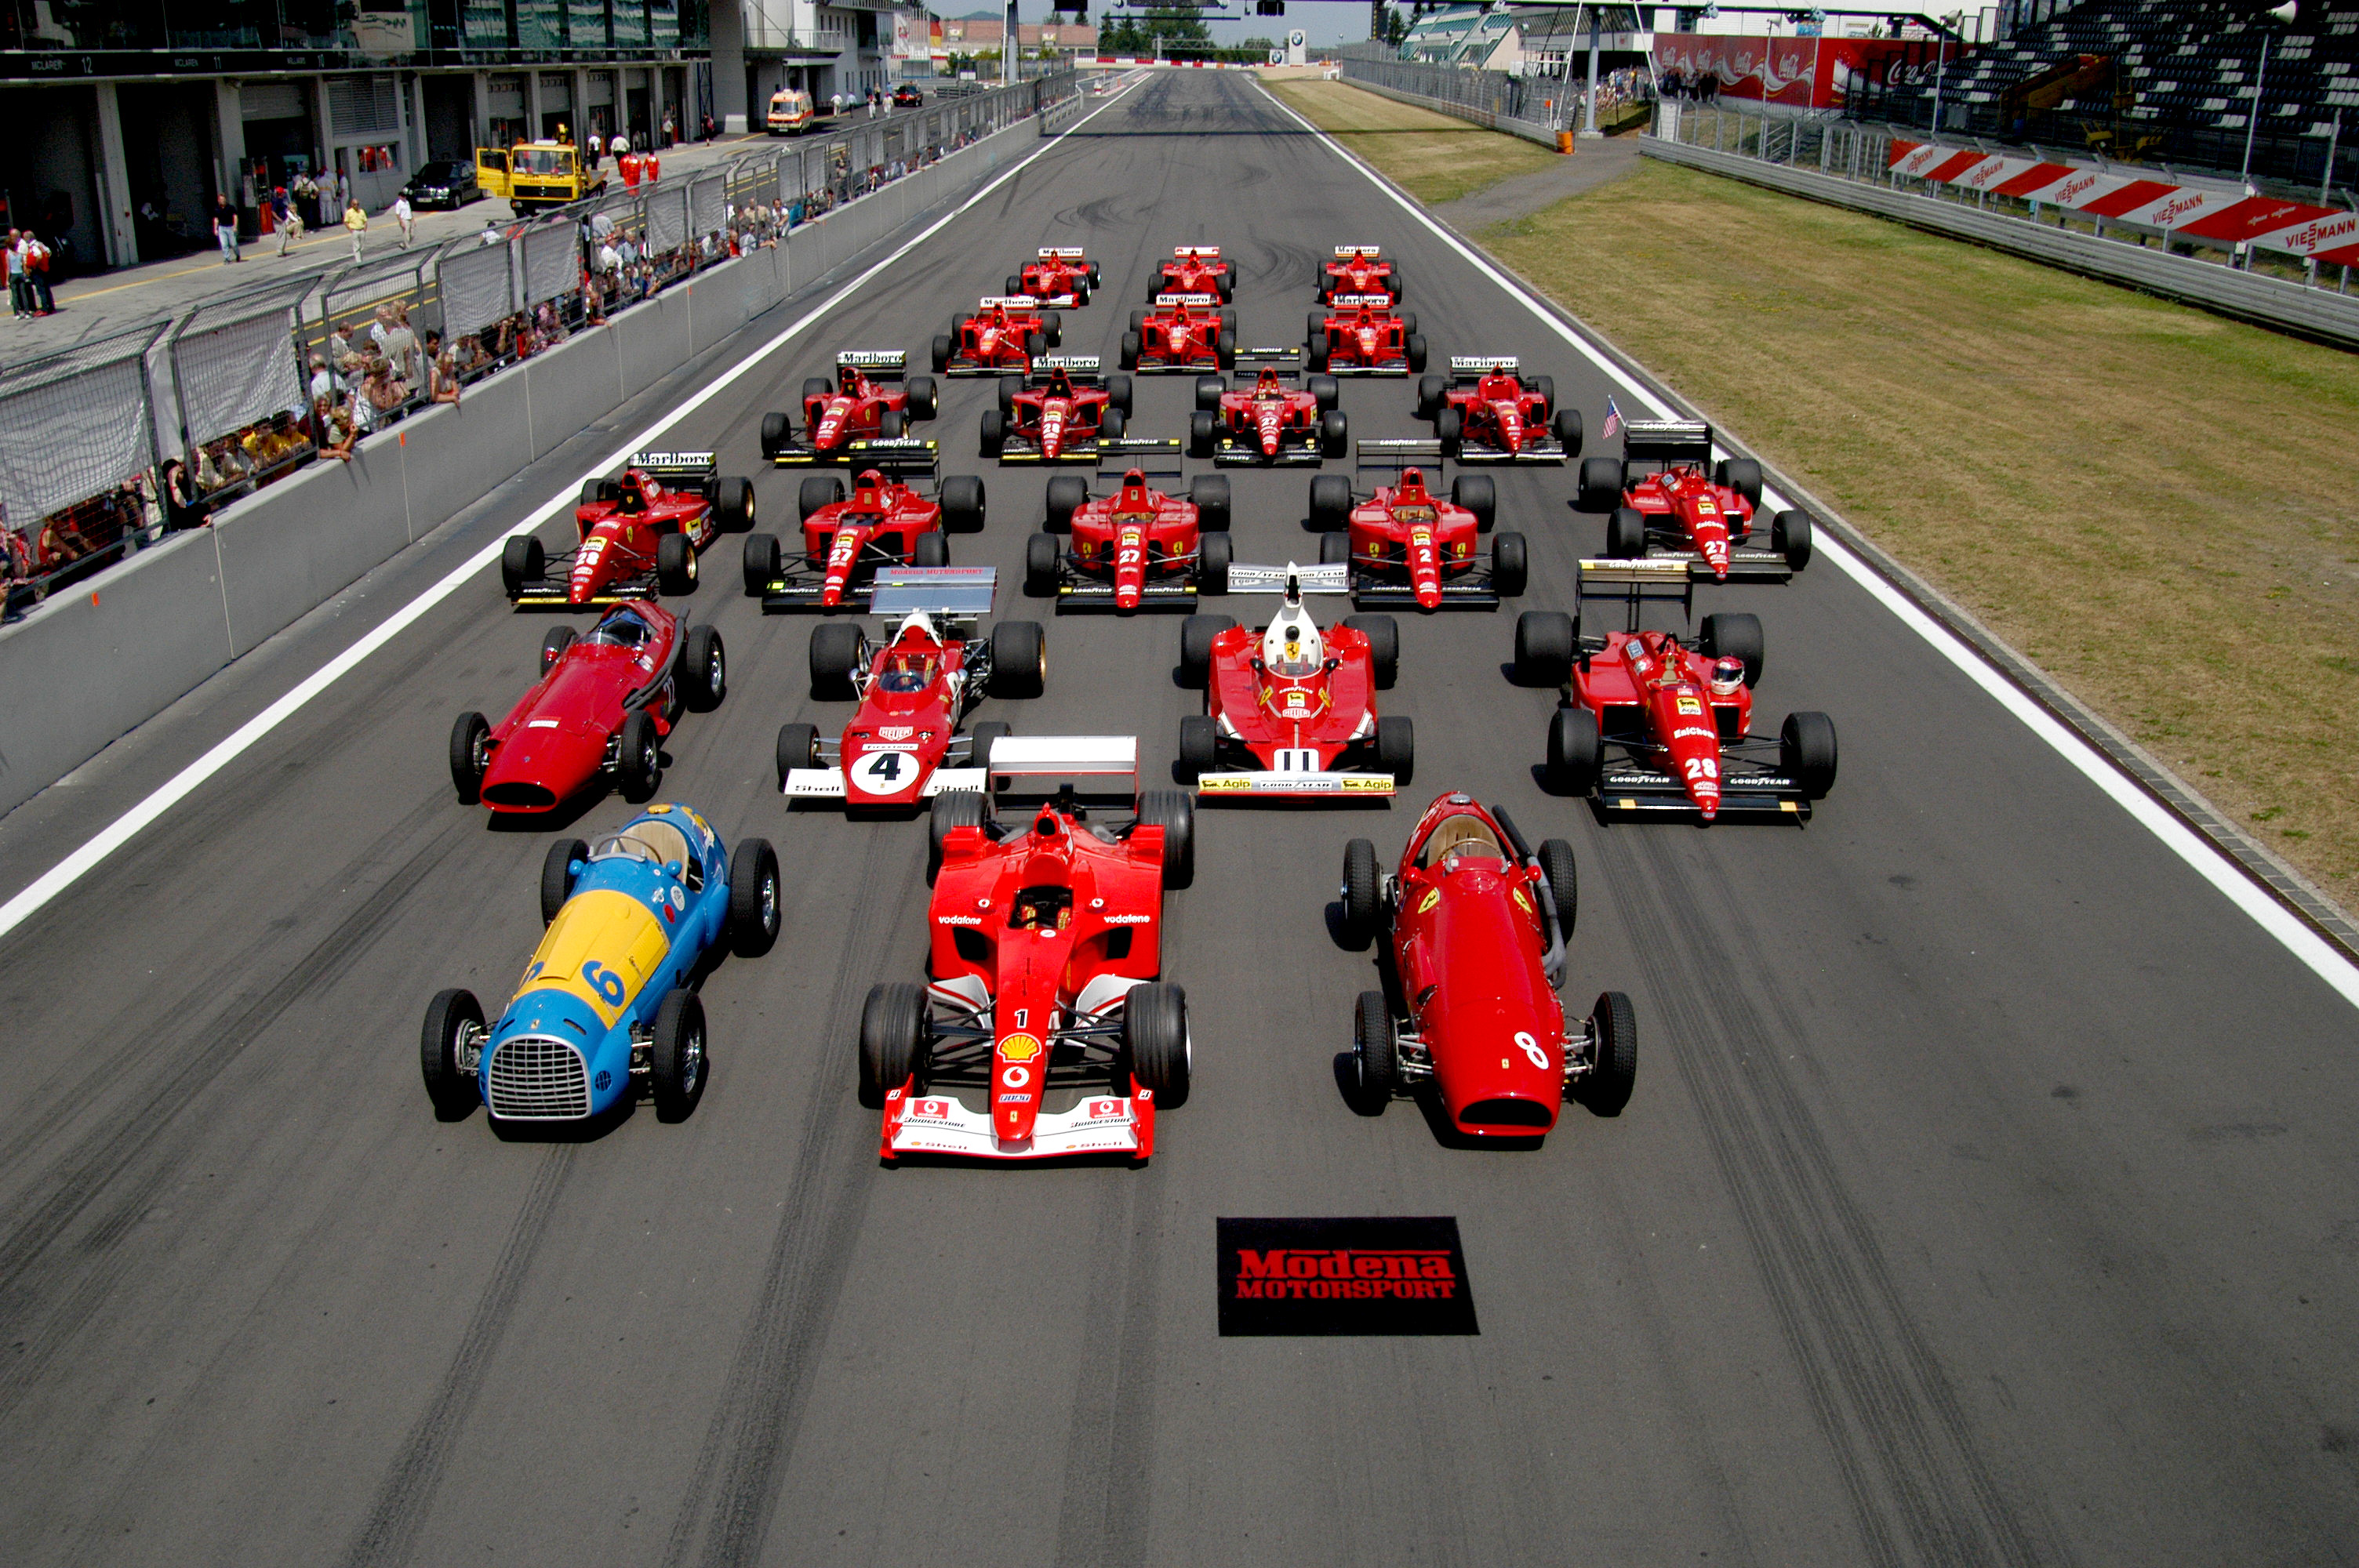 File:Ferrari Formula 1 Lineup At The Nürburgring